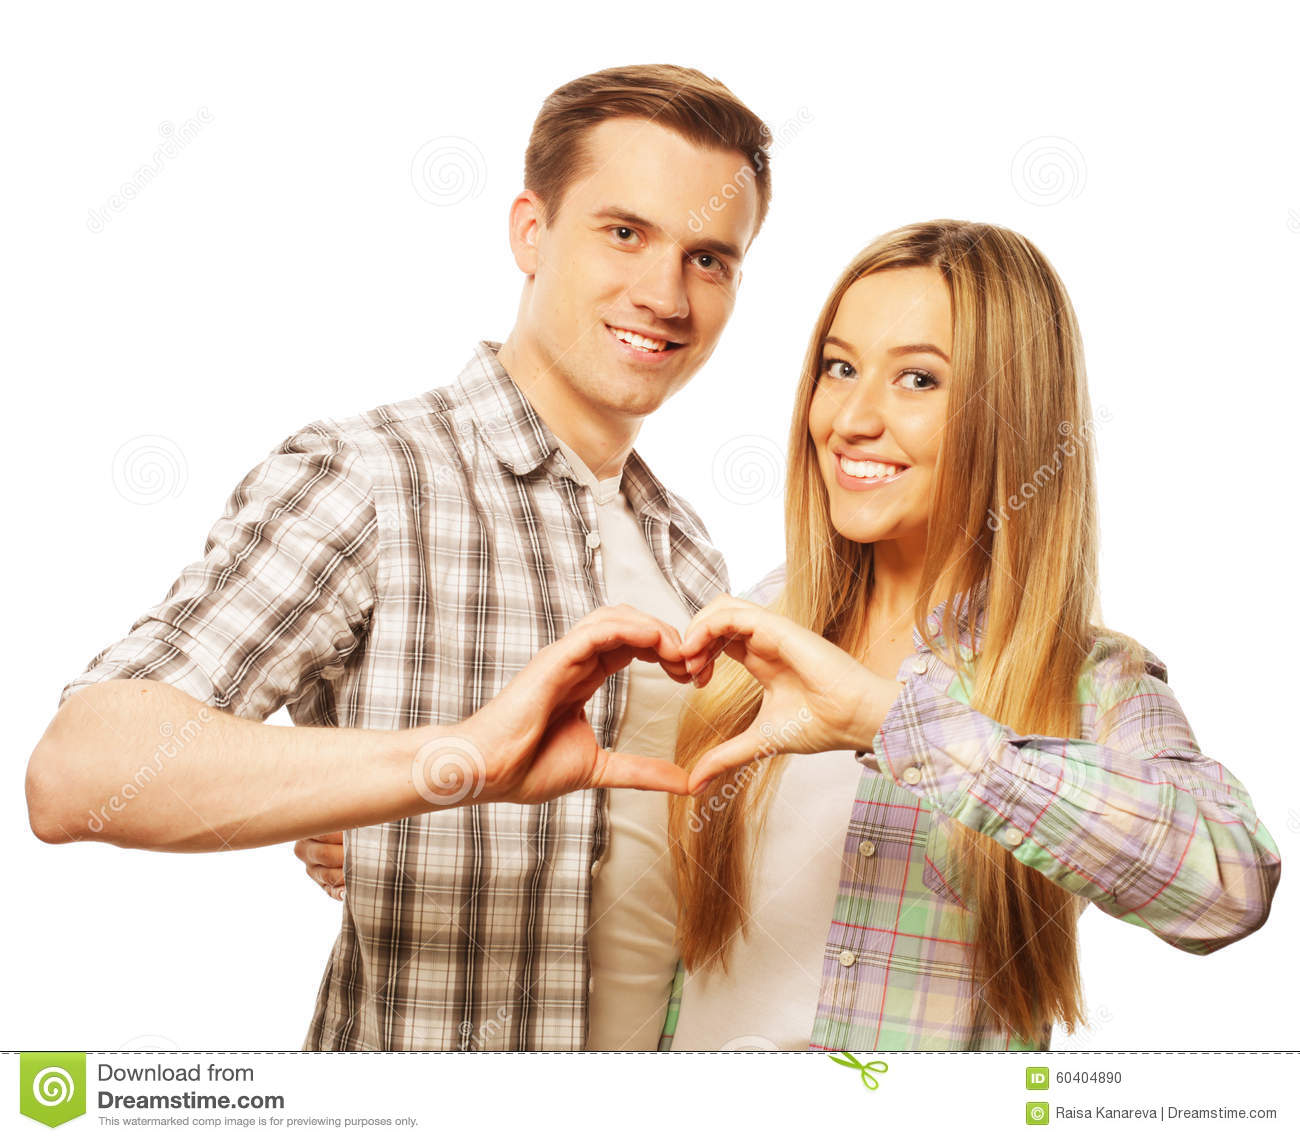 Showing Love: Happy Couple In Love Showing Heart With Their Fingers